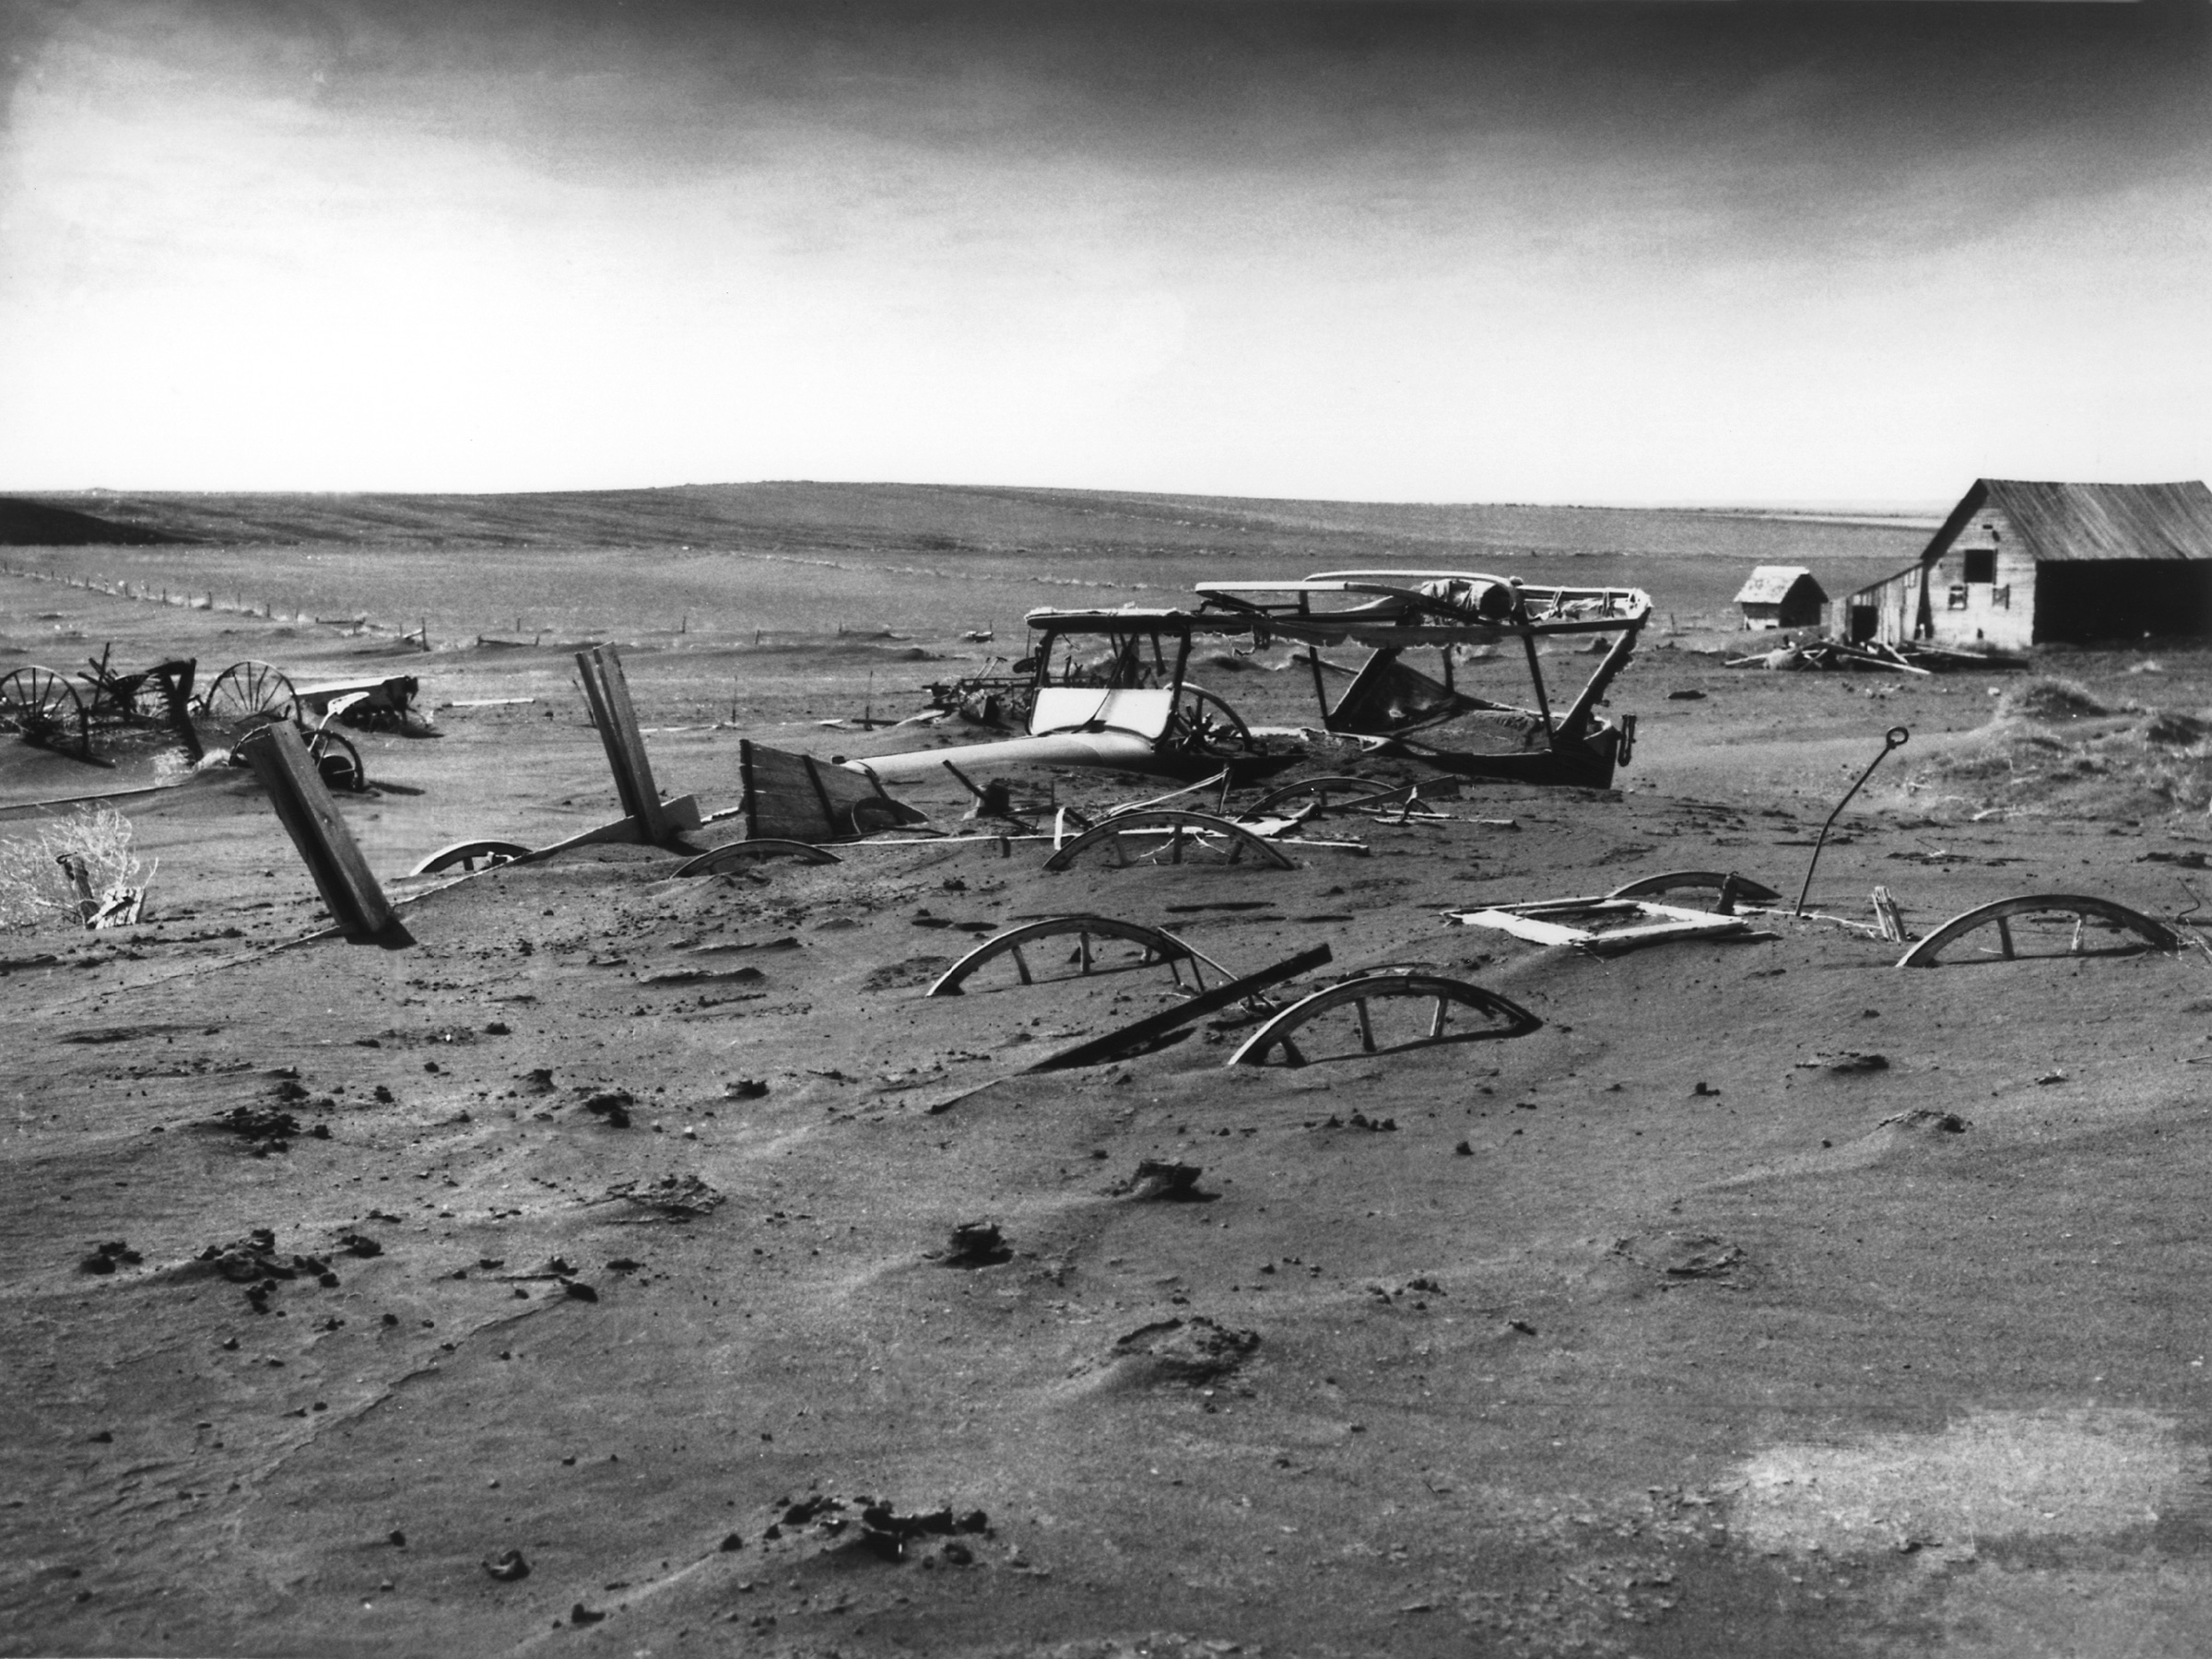 Farm equipment buried in dust Photo: wiki